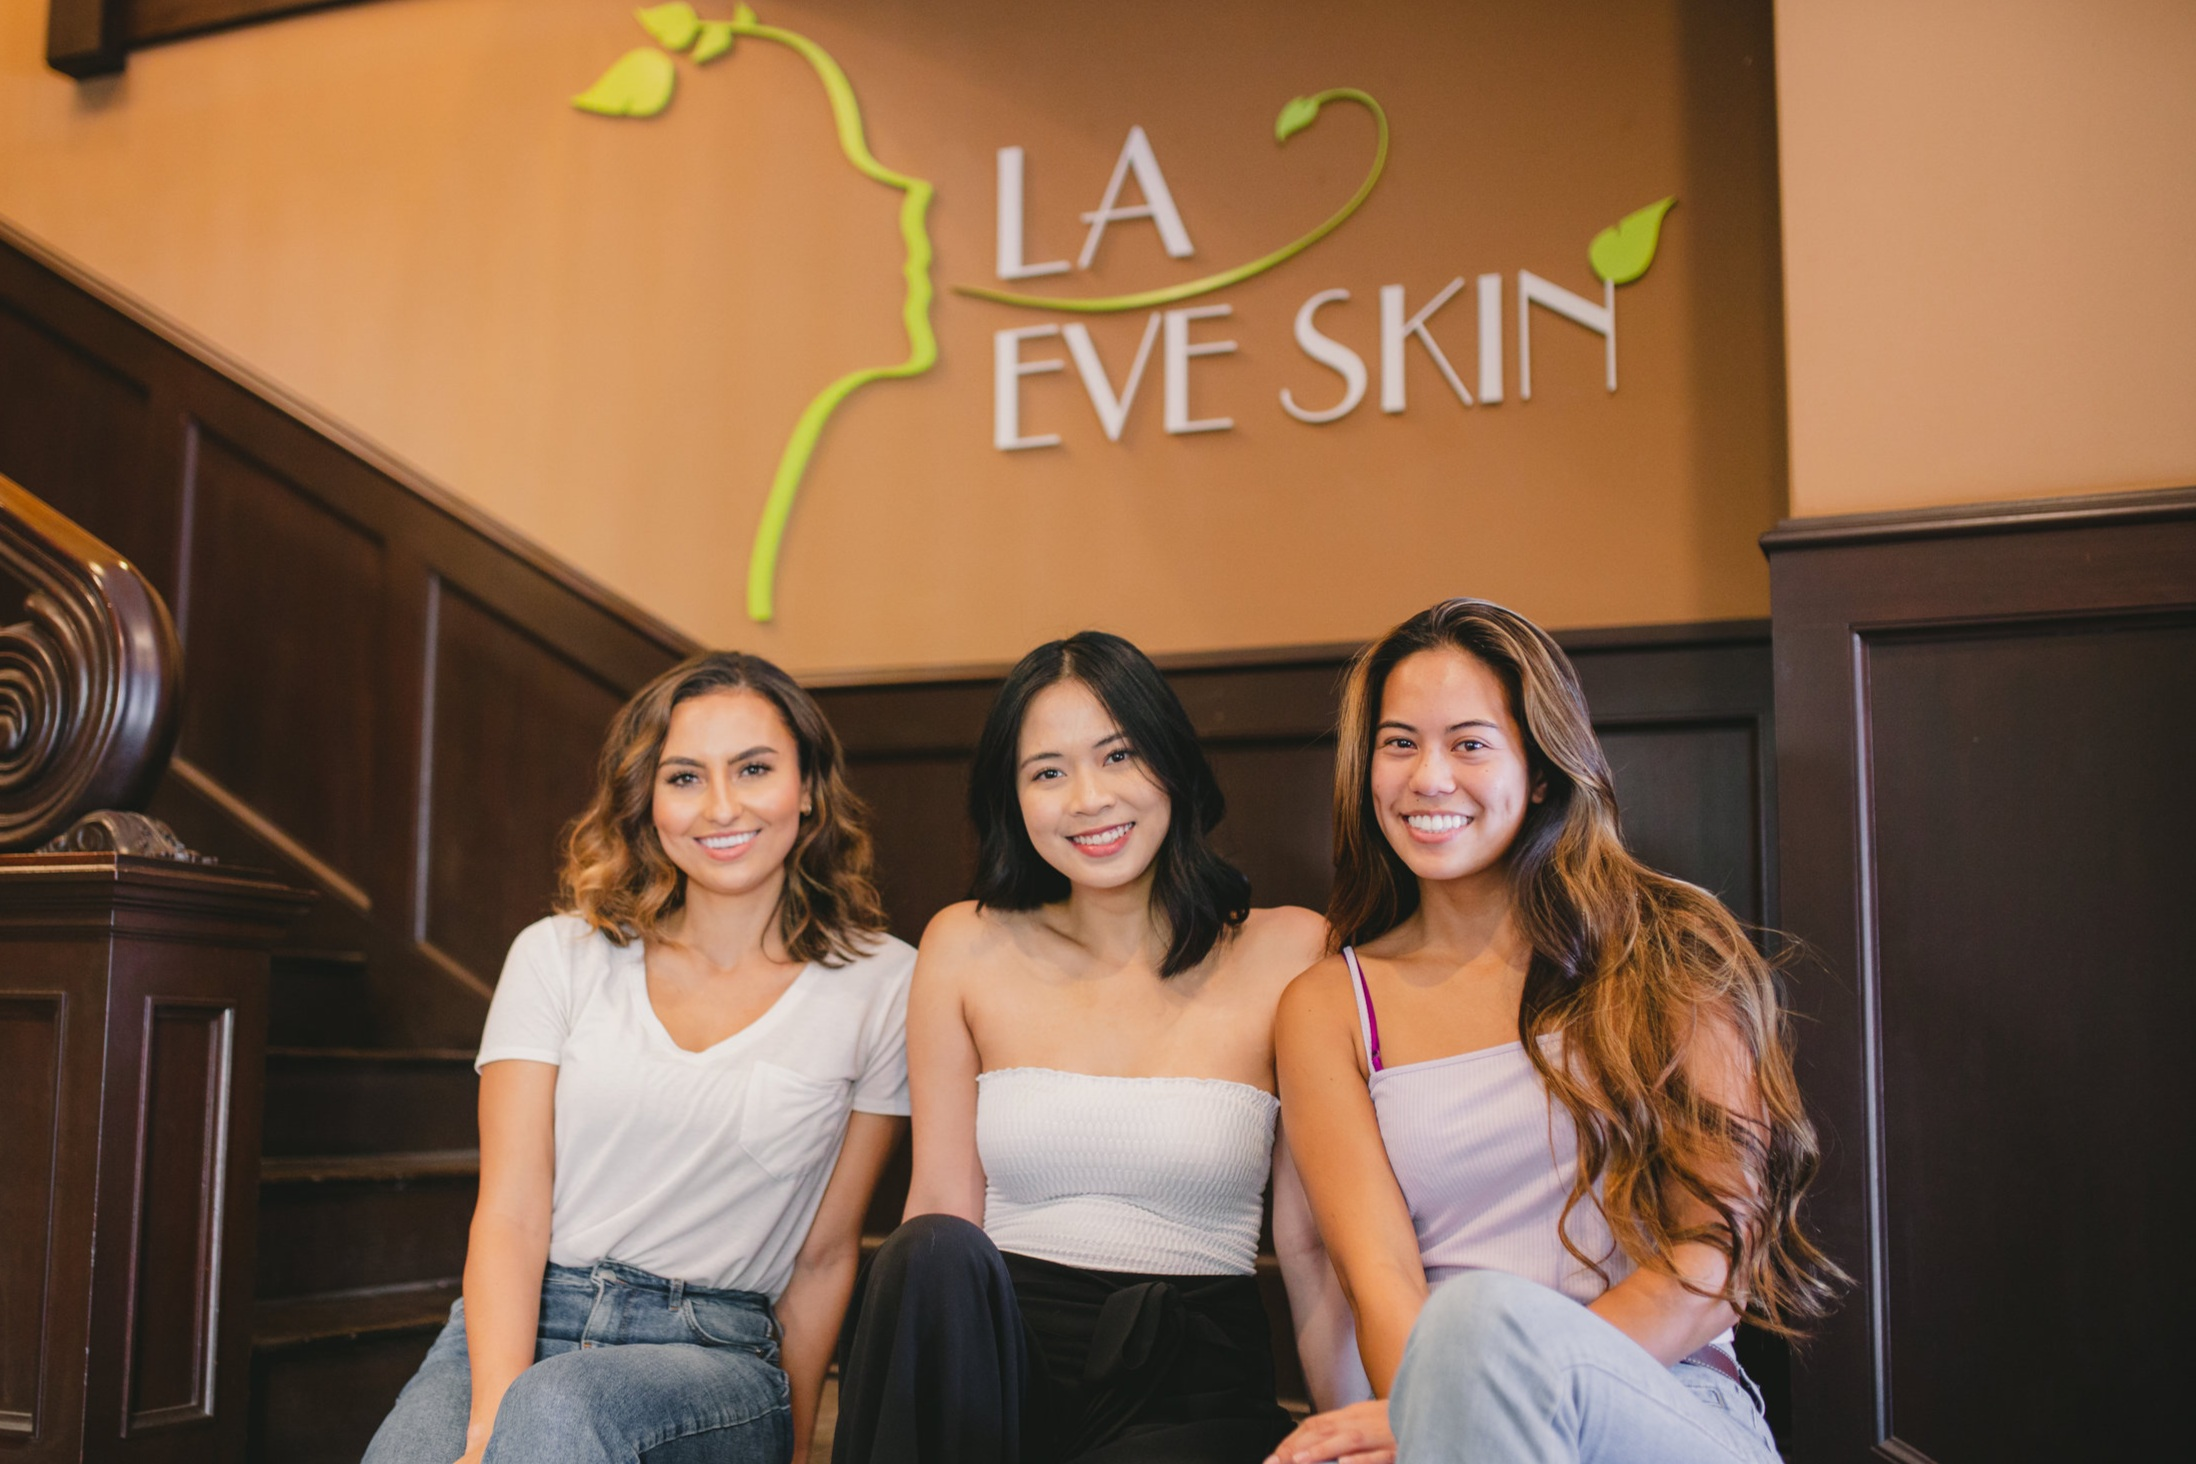 Satisfaction Guaranteed - With your happiness in mind, the LA Eve Skin team ensures your satisfaction every visit!